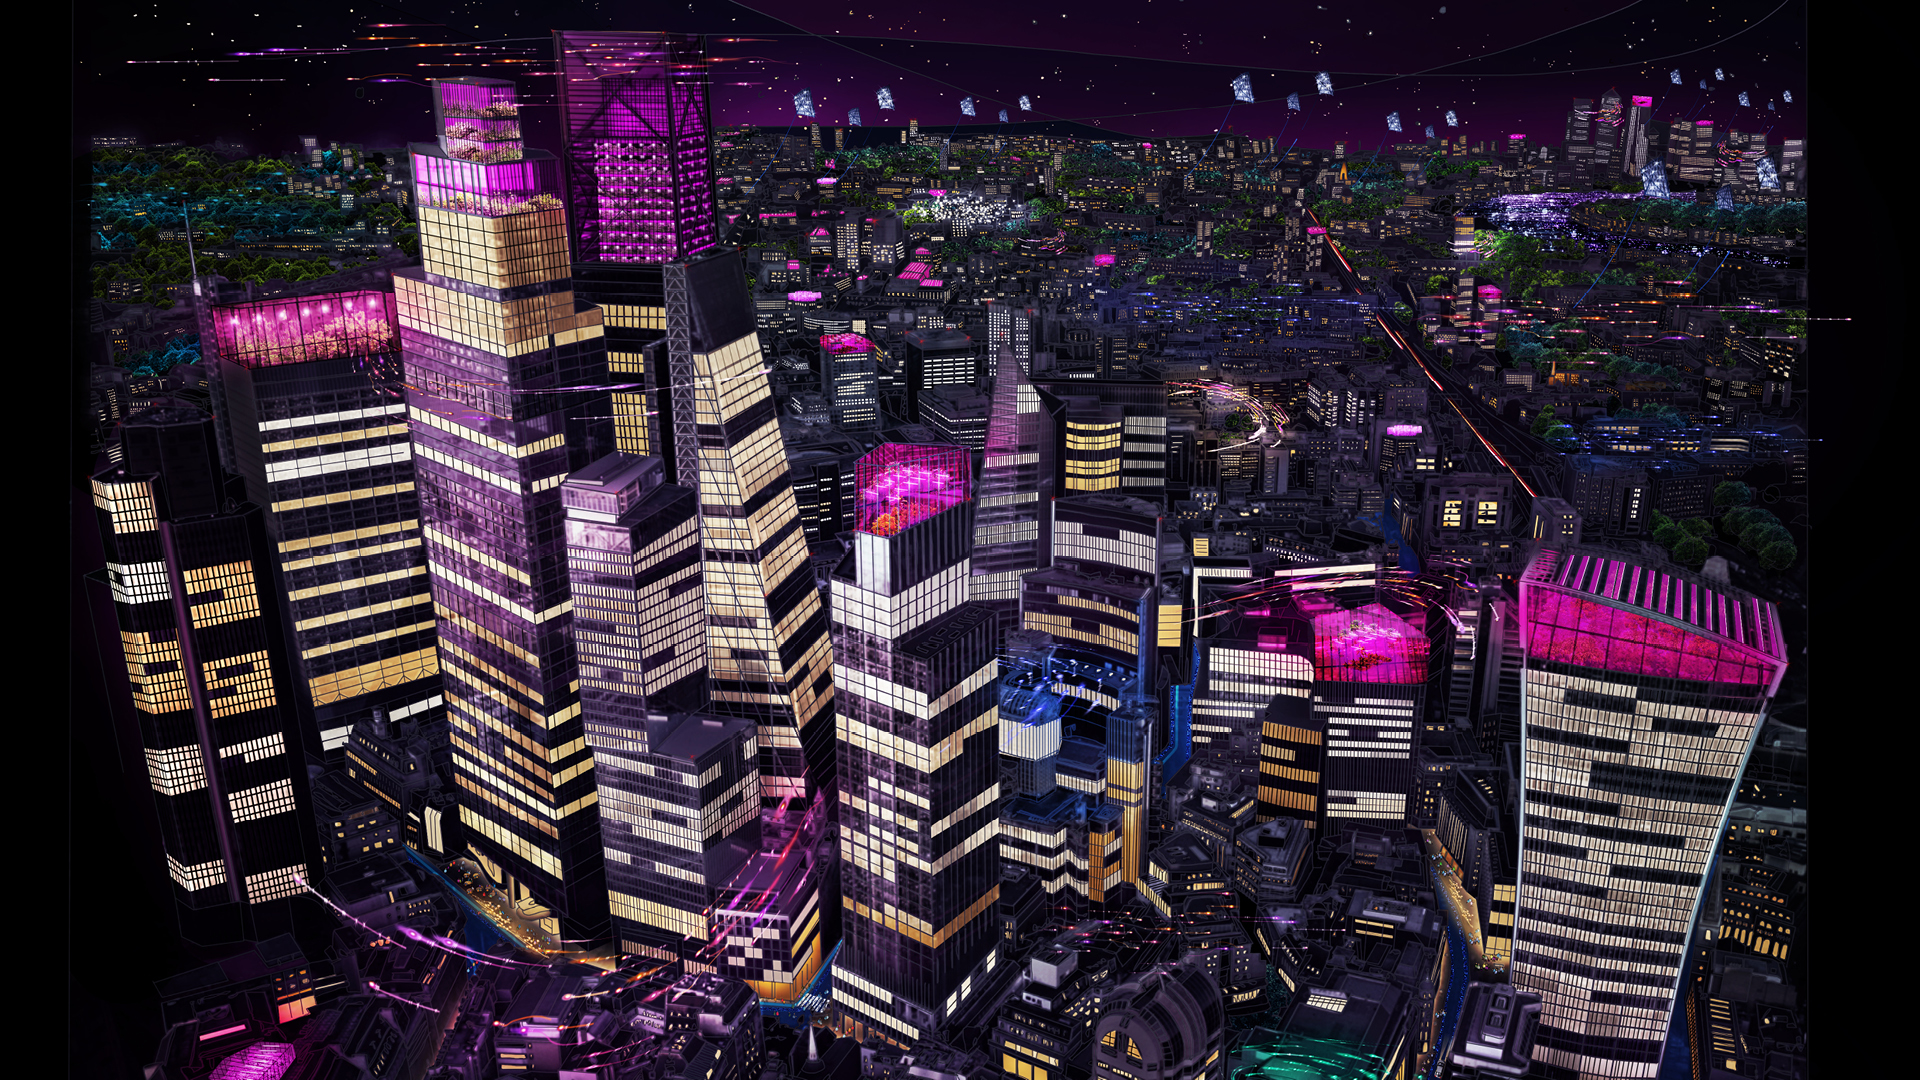 Third Age of Light by Speirs + Major - Aerial View of London at night | Third Age of Light VR Experience | Speirs + Major | STIRworld